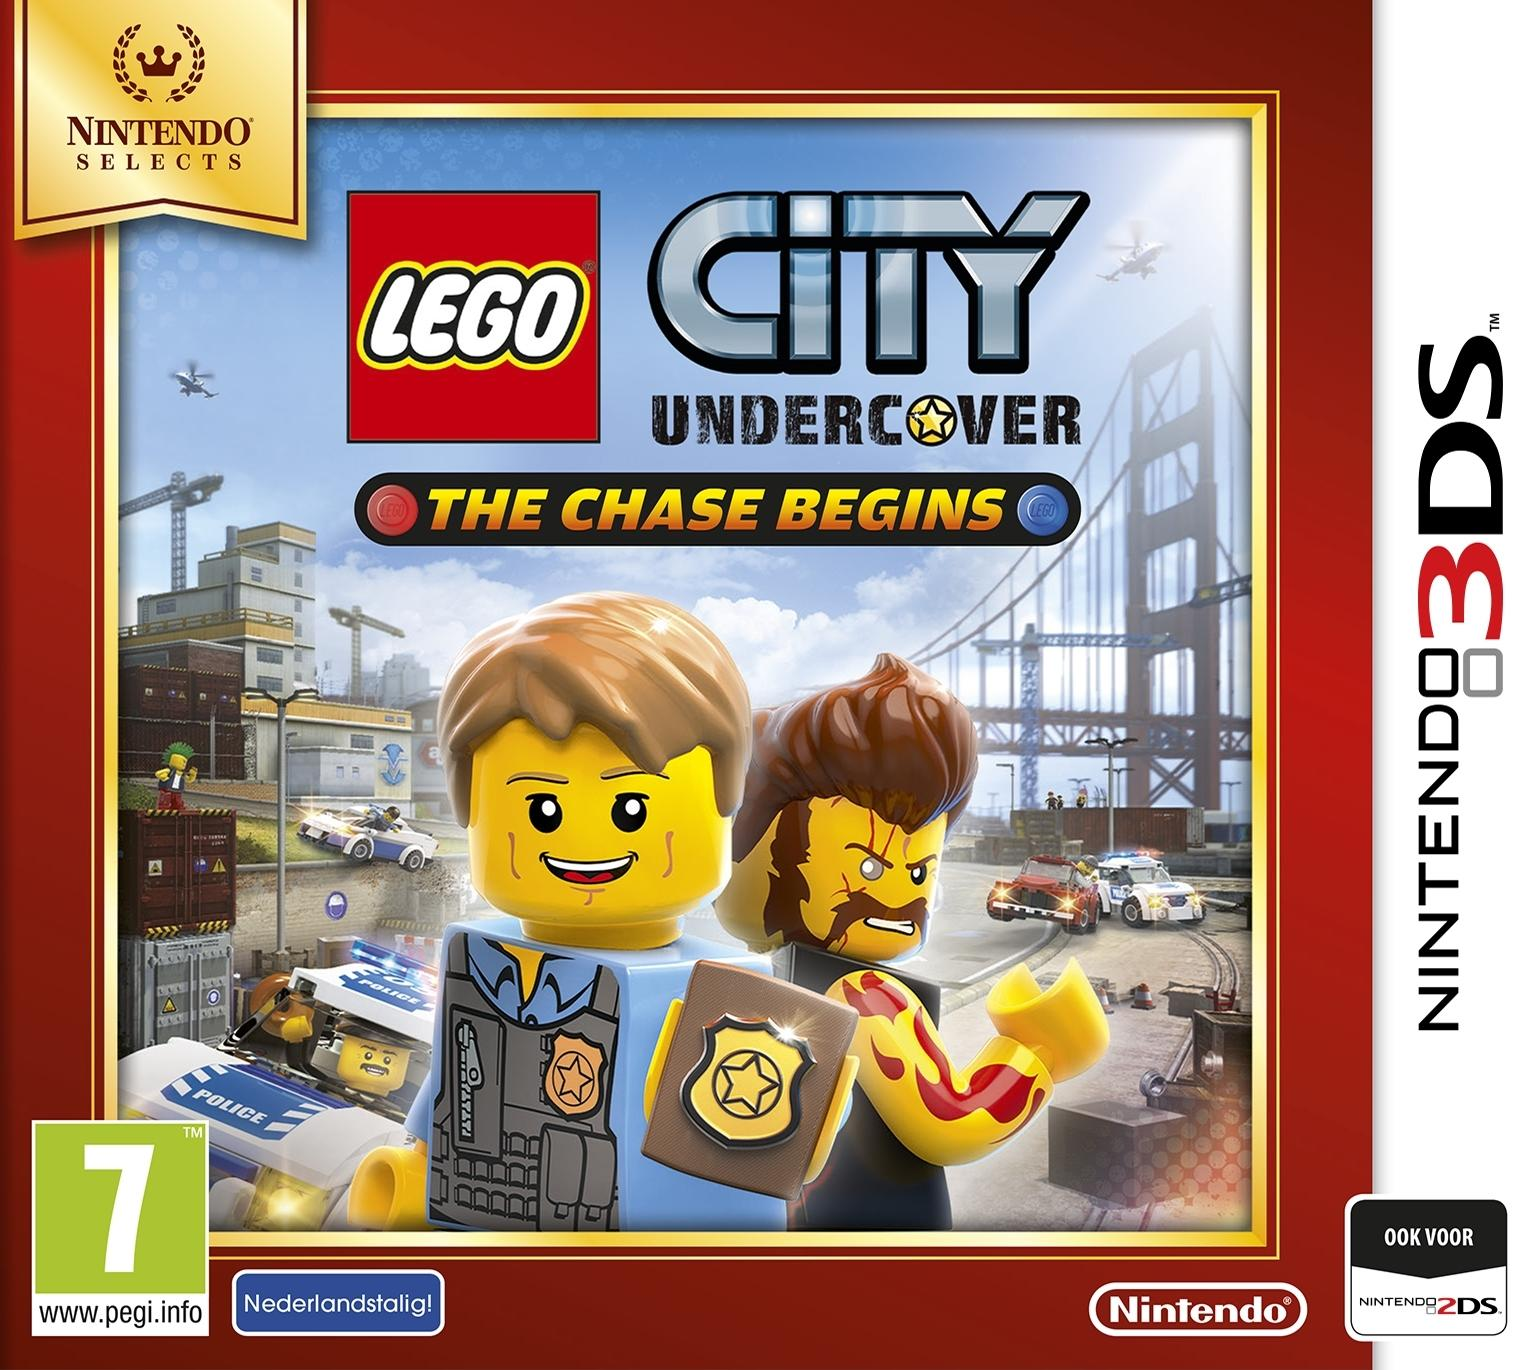 Nintendo LEGO City Undercover, The Chase Begins (Select) 3DS (2233748) thumbnail